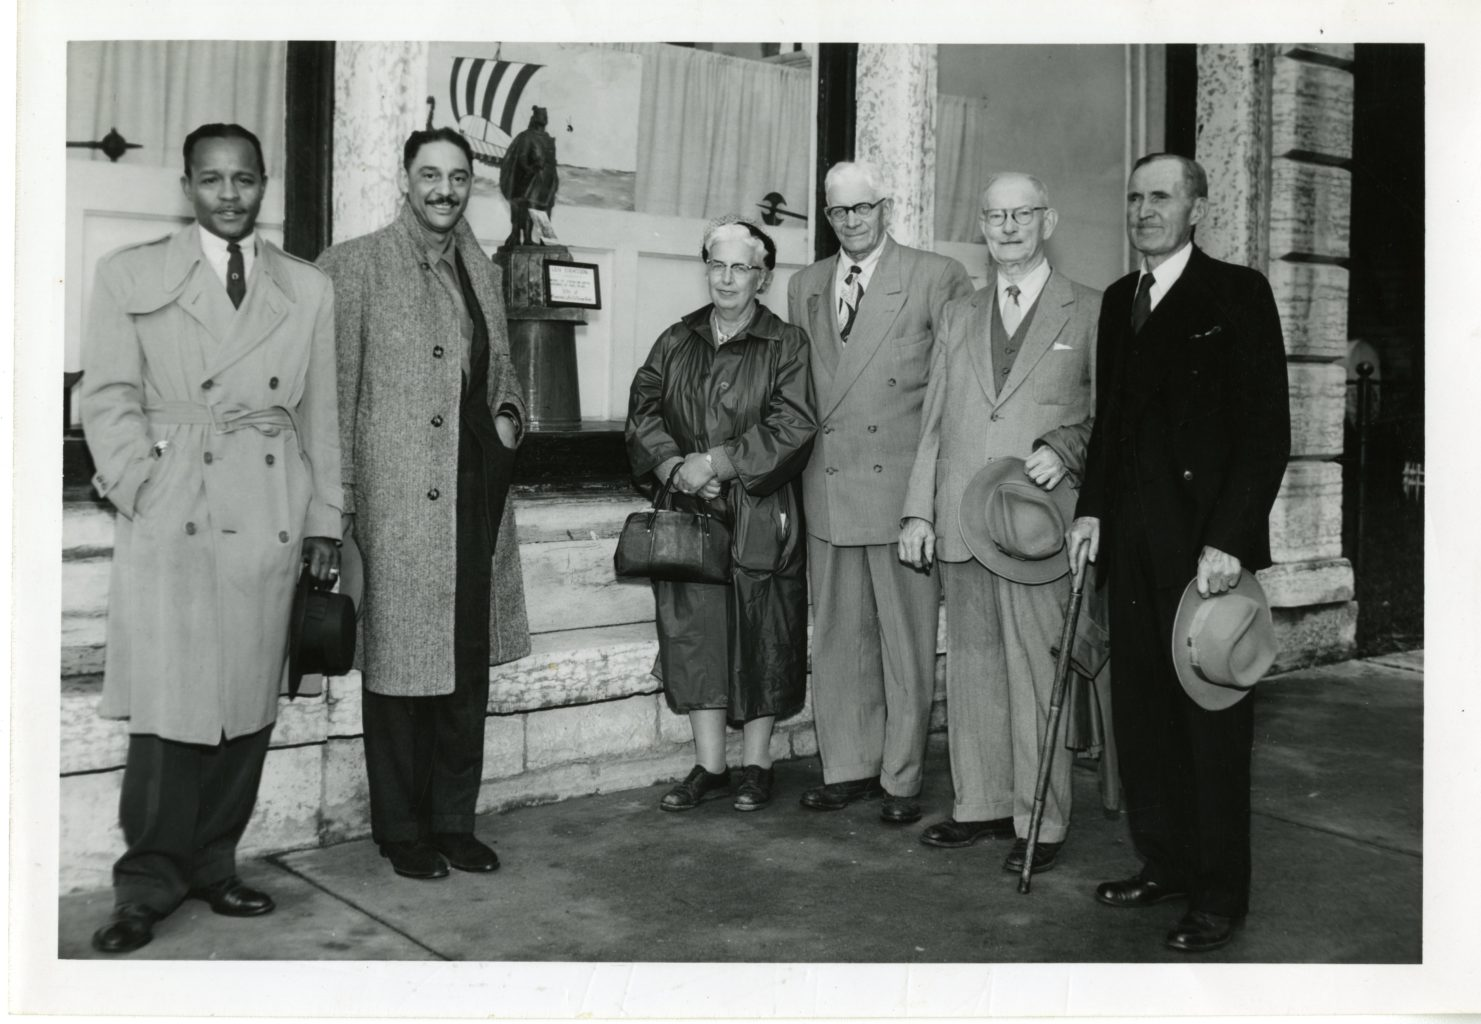 Group of five men and woman posing for a photo outside of a building.